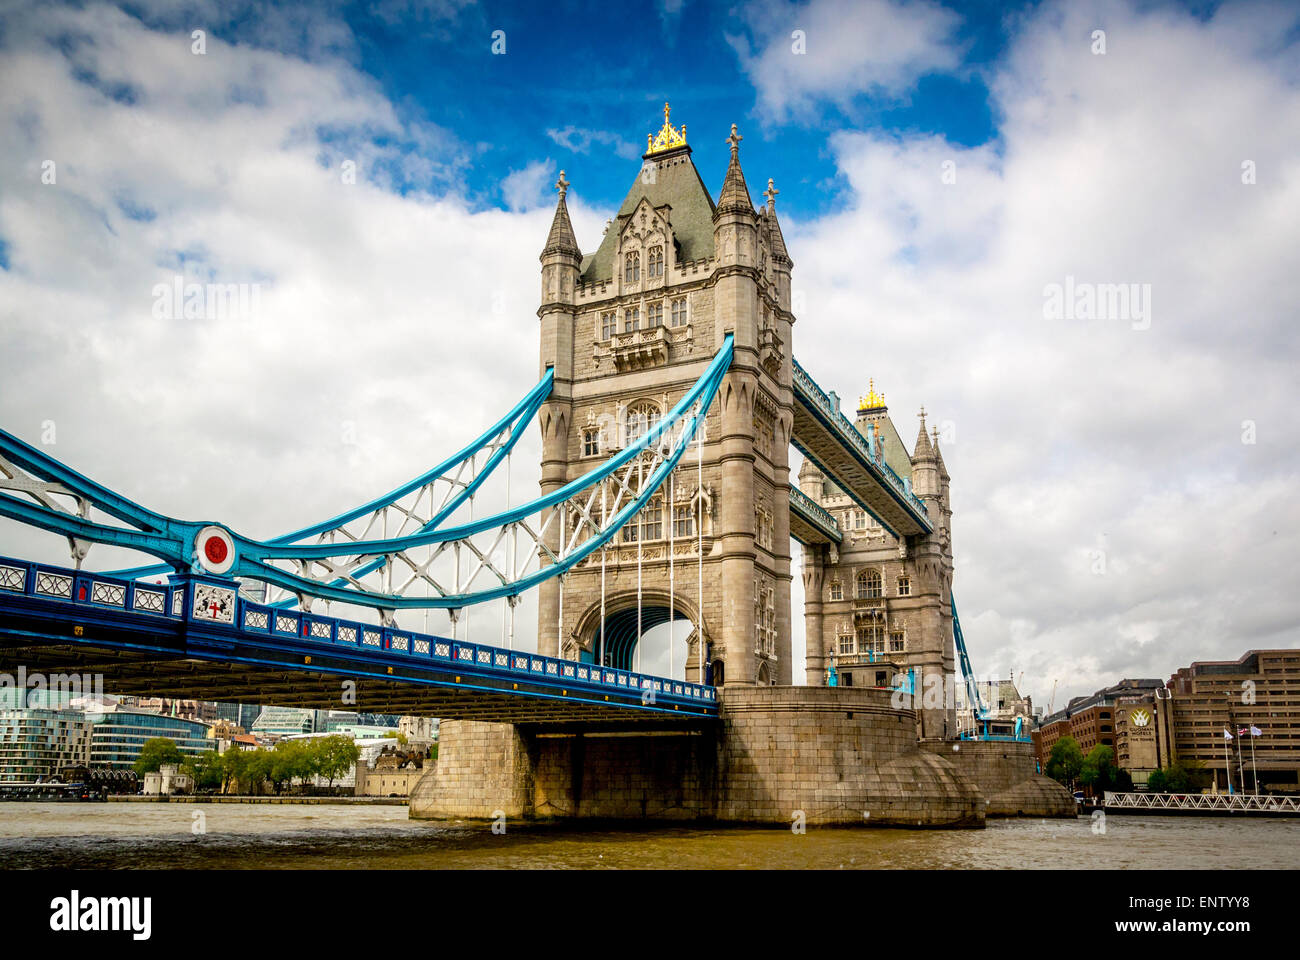 Tower Bridge, London, viewed from south side of river Thames - Stock Image